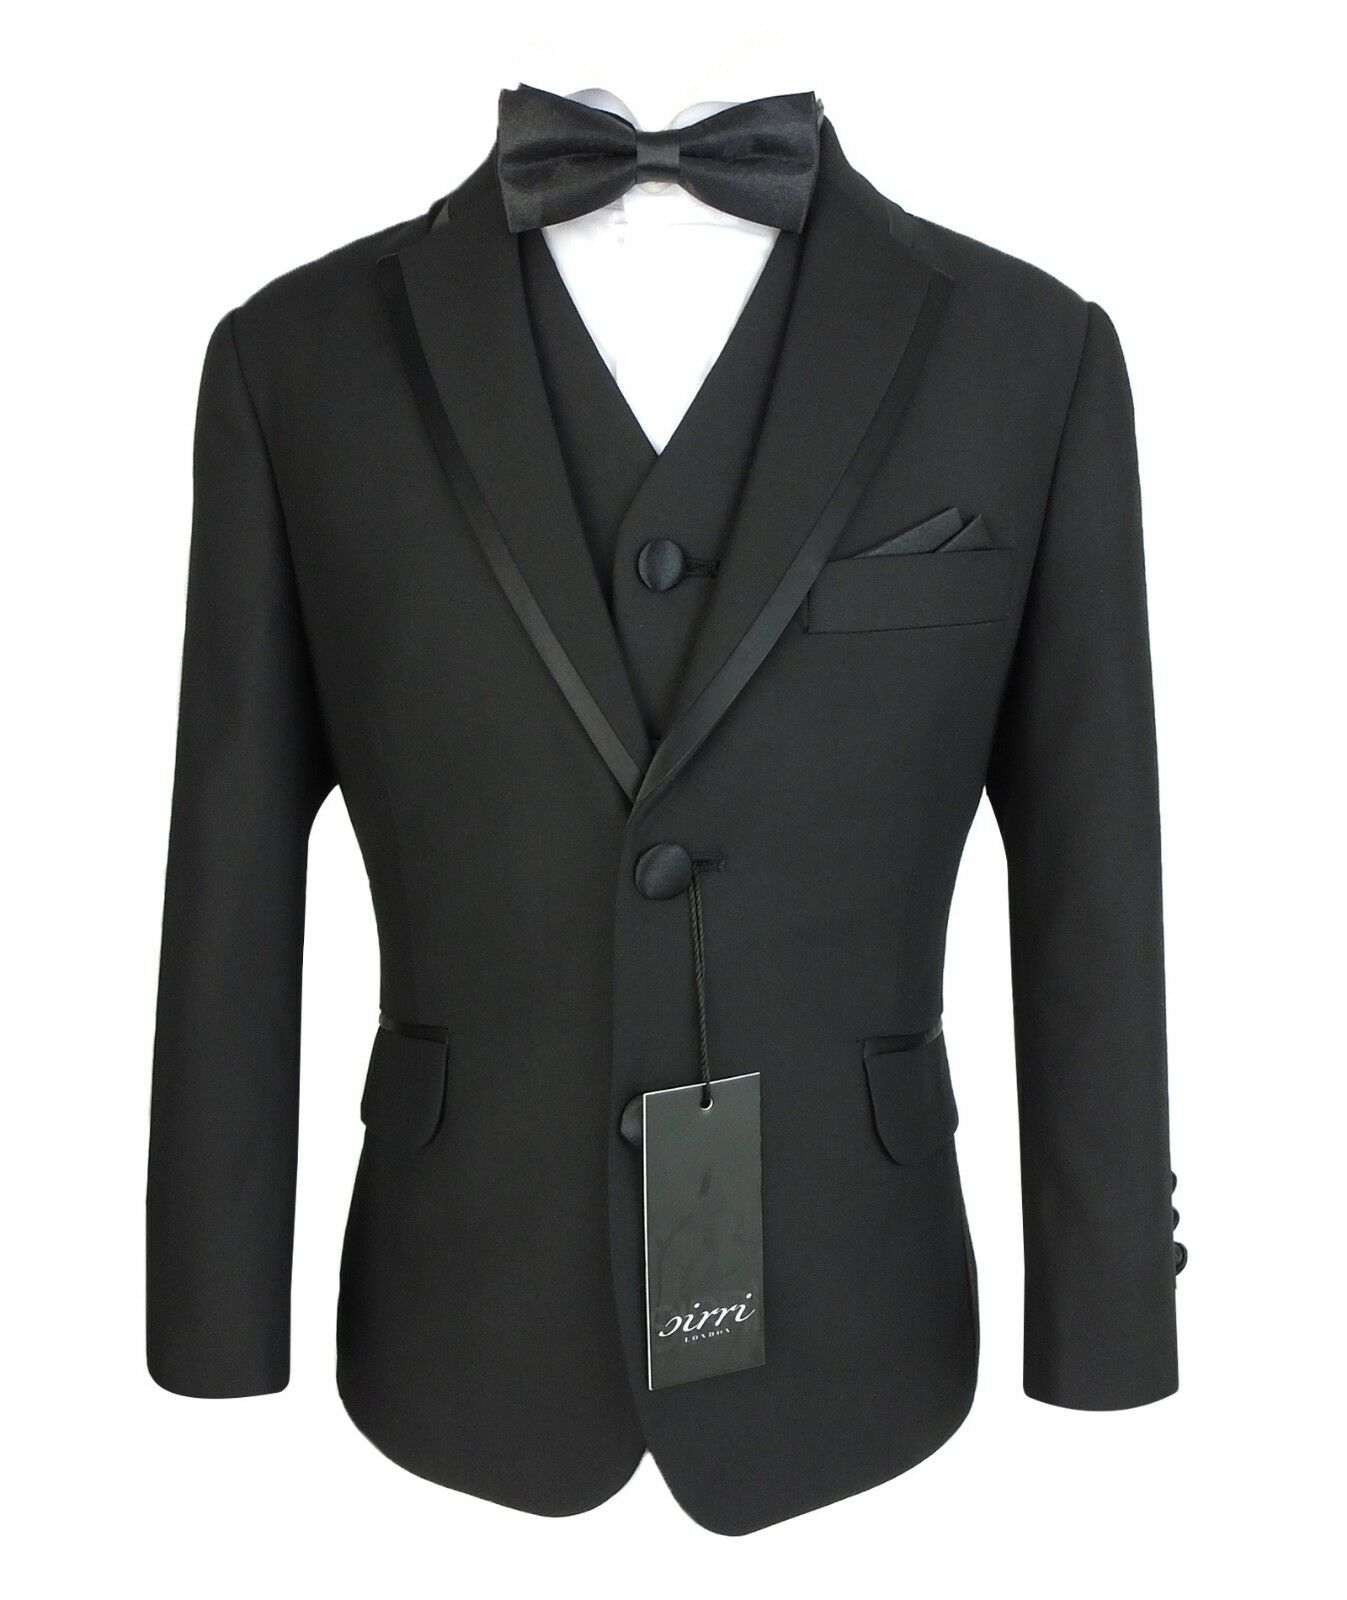 Boys Black Piping Tuxedo Dinner Suit Kids Page Boy Wedding Party Prom Outfit